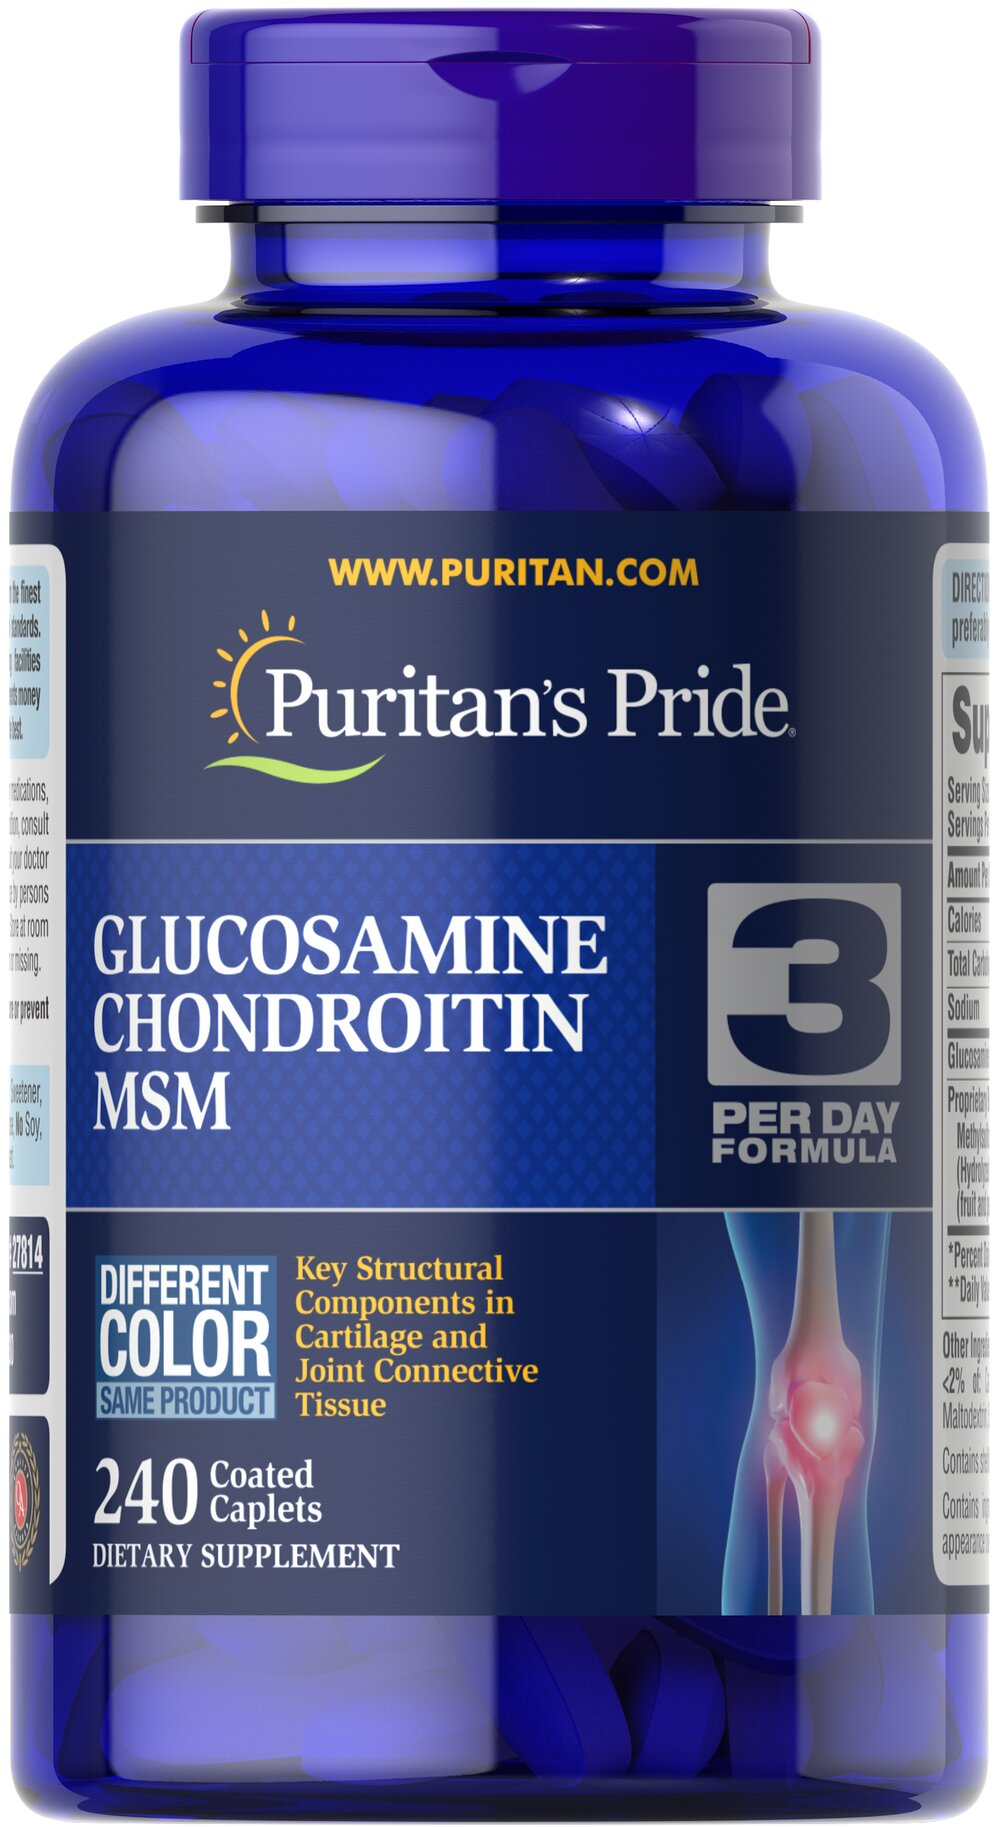 Double Strength Glucosamine, Chondroitin & MSM Joint Soother®Combines the top three structural components found in popular joint support products — Glucosamine, Chondroitin and MSM — with amino and herbal support from Collagen and Boswellia Serrata** This high-quality formula delivers 1,500 mg of Glucosamine HCl  to help support cartilage, lubricate the joints, and helps with occasional joint stress due to exercise or physical activity** 240 Caplets